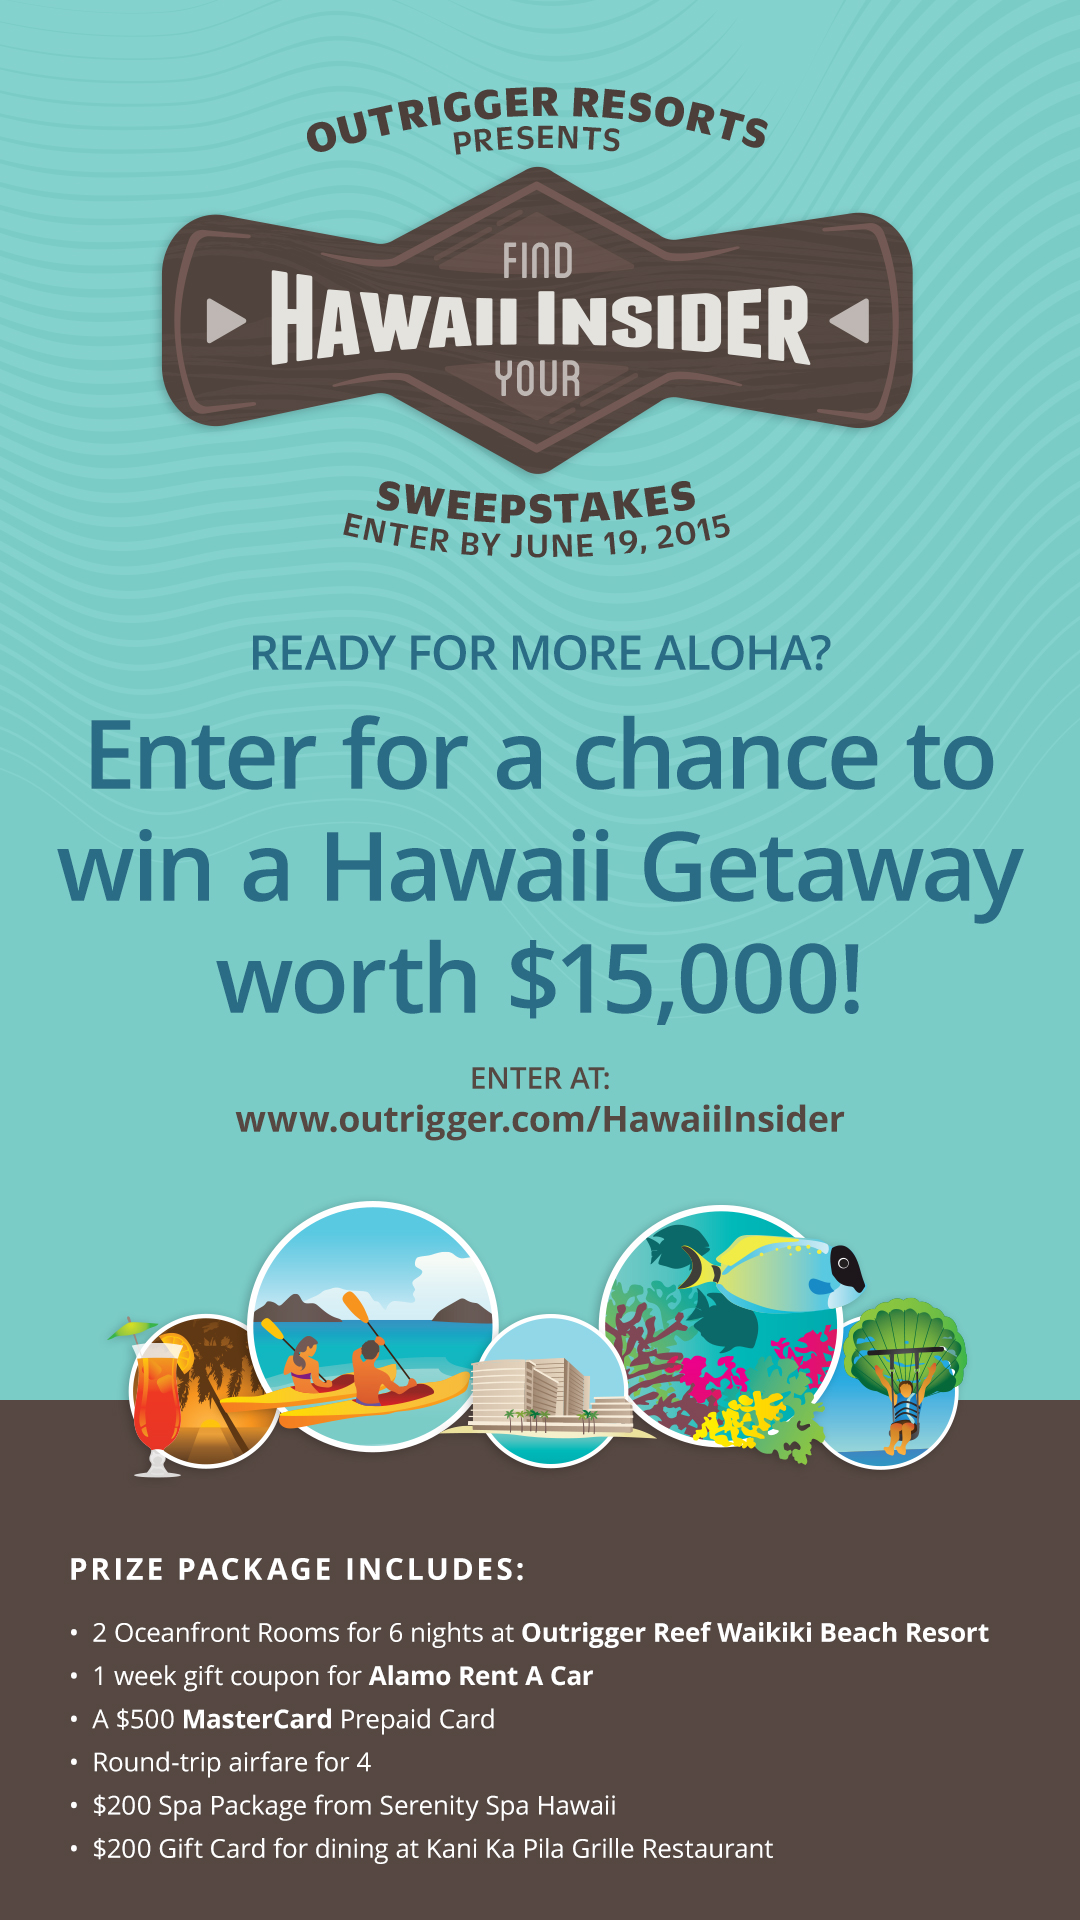 Hawaii Insider Sweepstakes On Property Promo